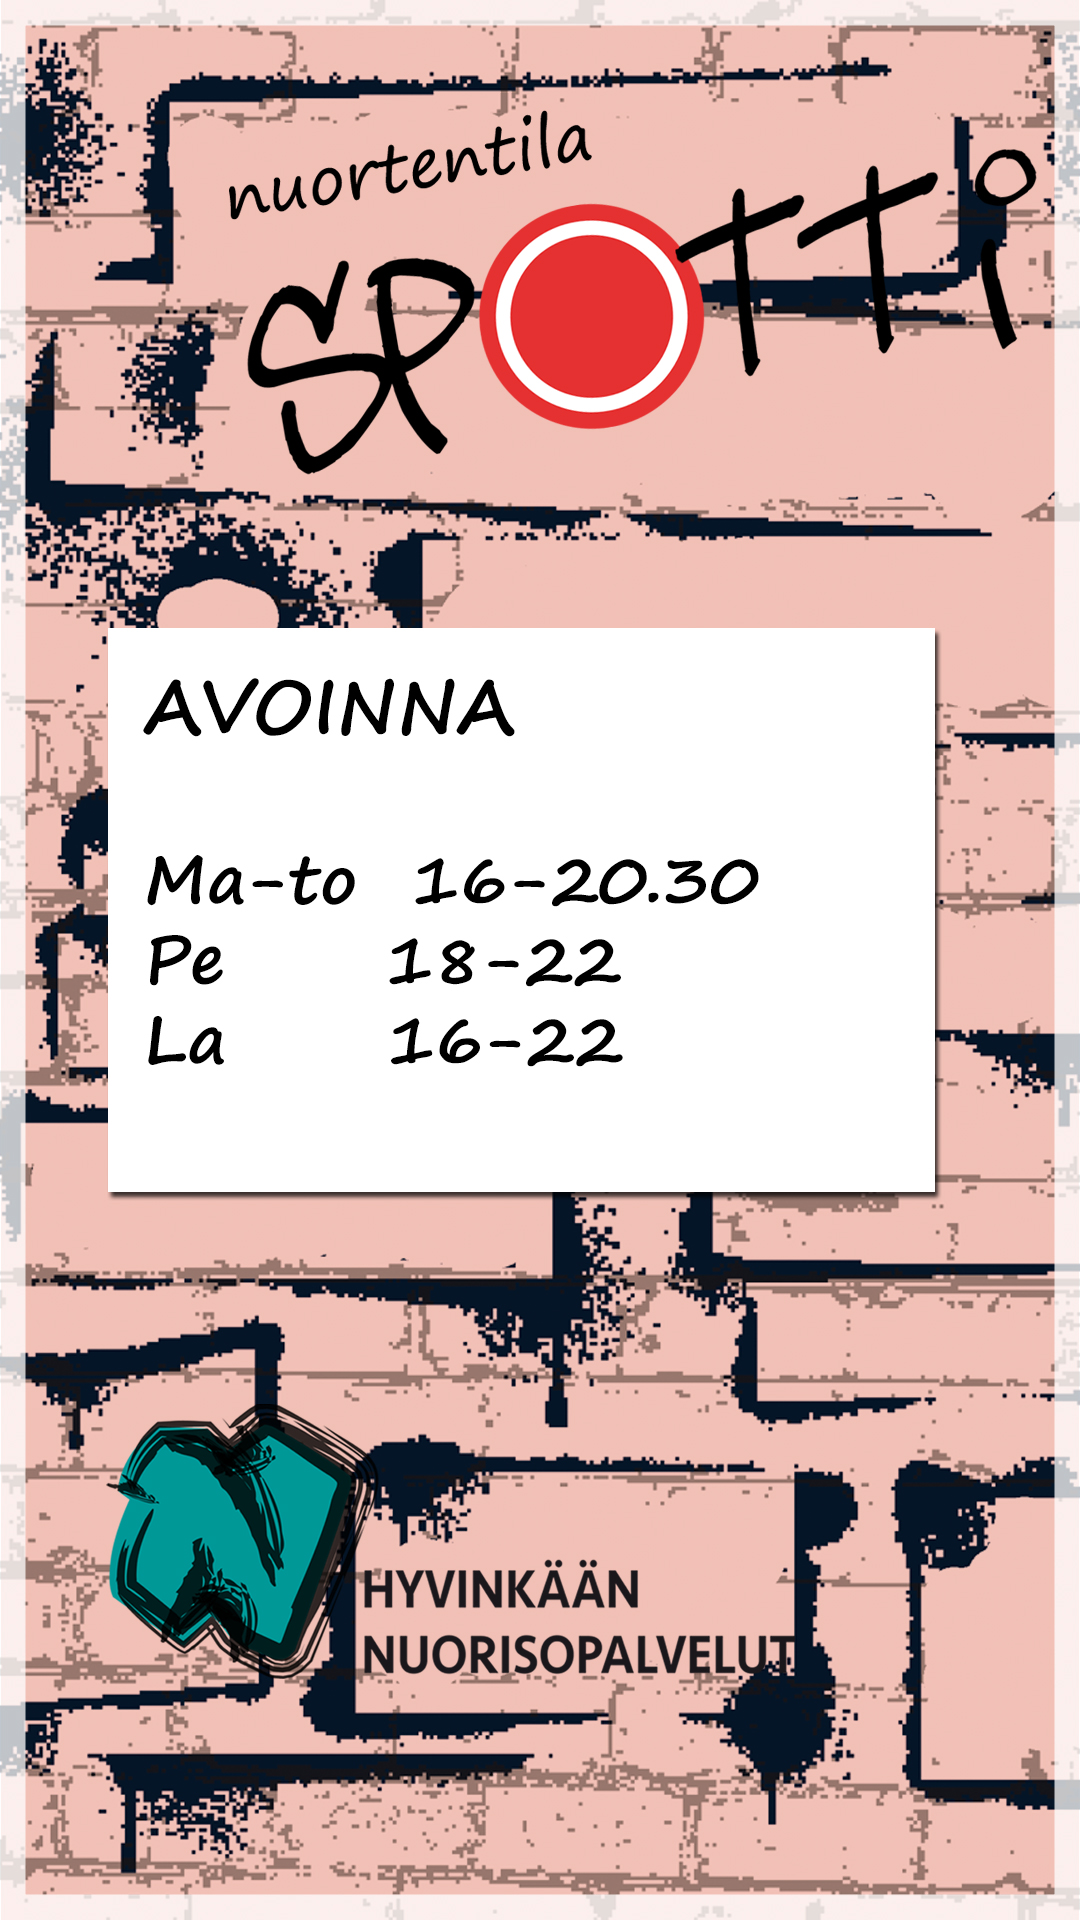 Avoinna ma-to 16-20.30, pe 18-22, la 16-22